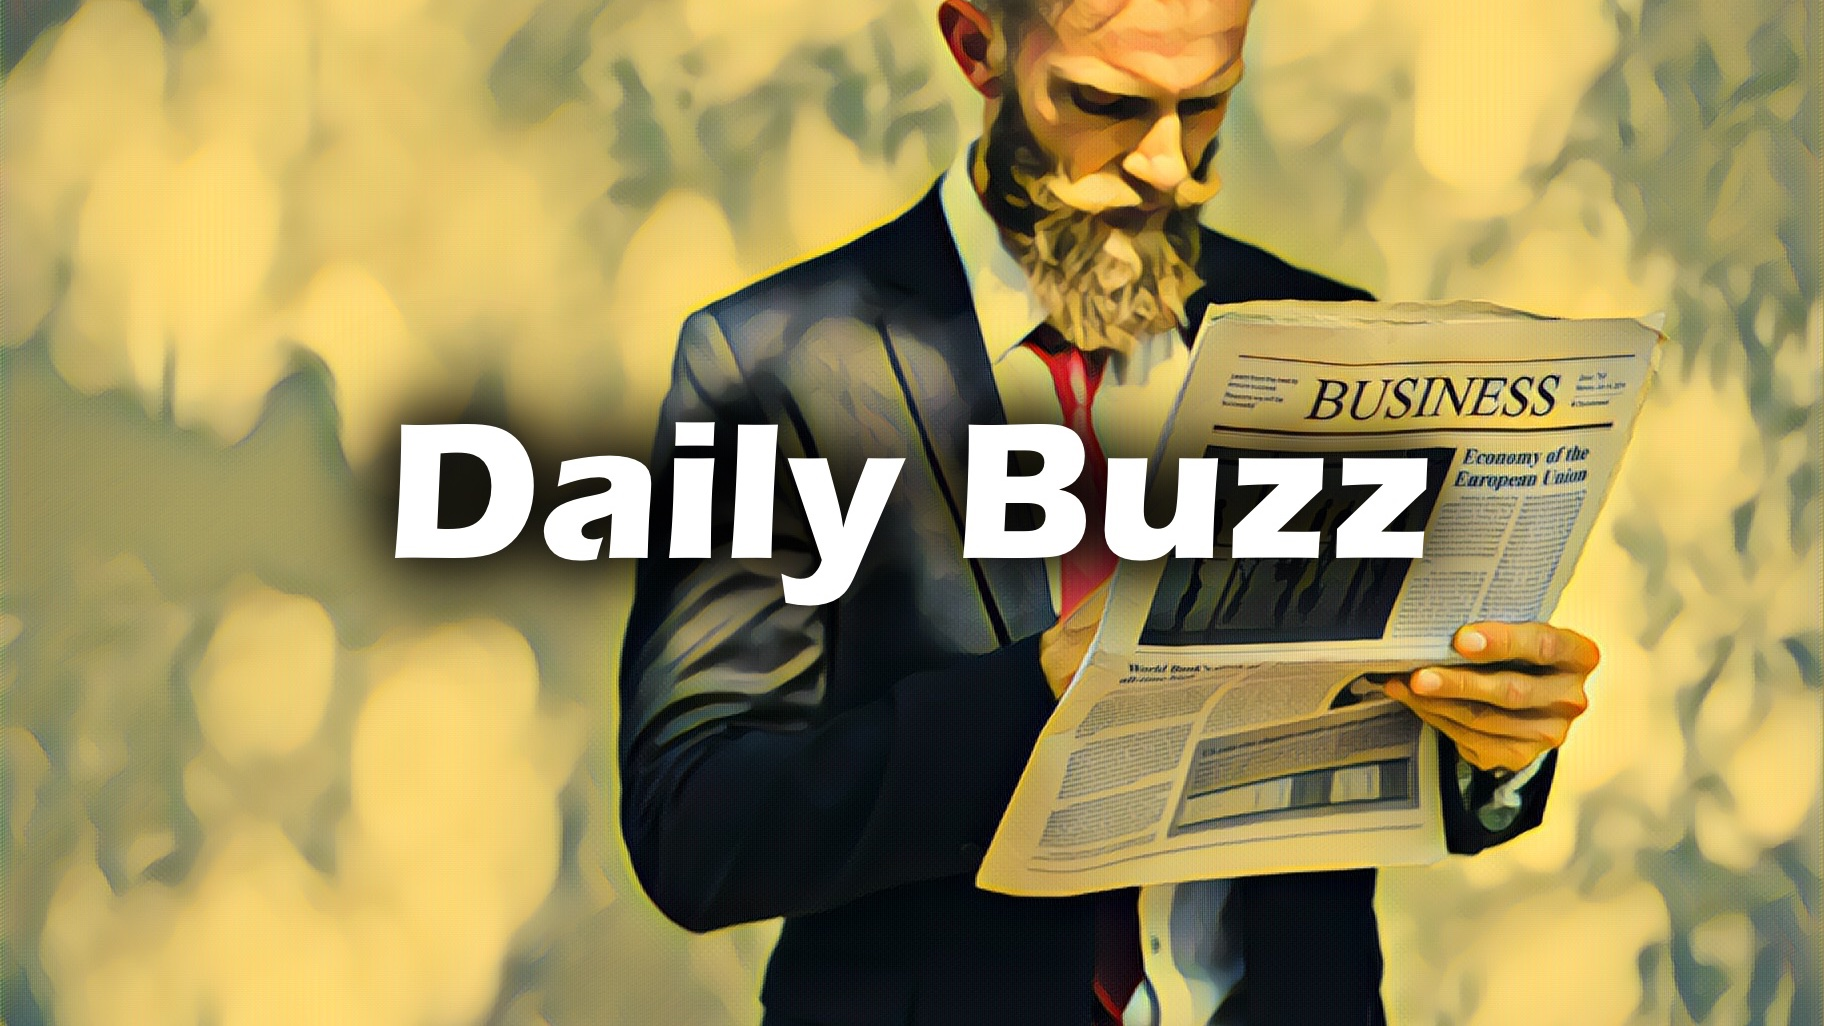 DailyBuzz Friday 5 October 2018